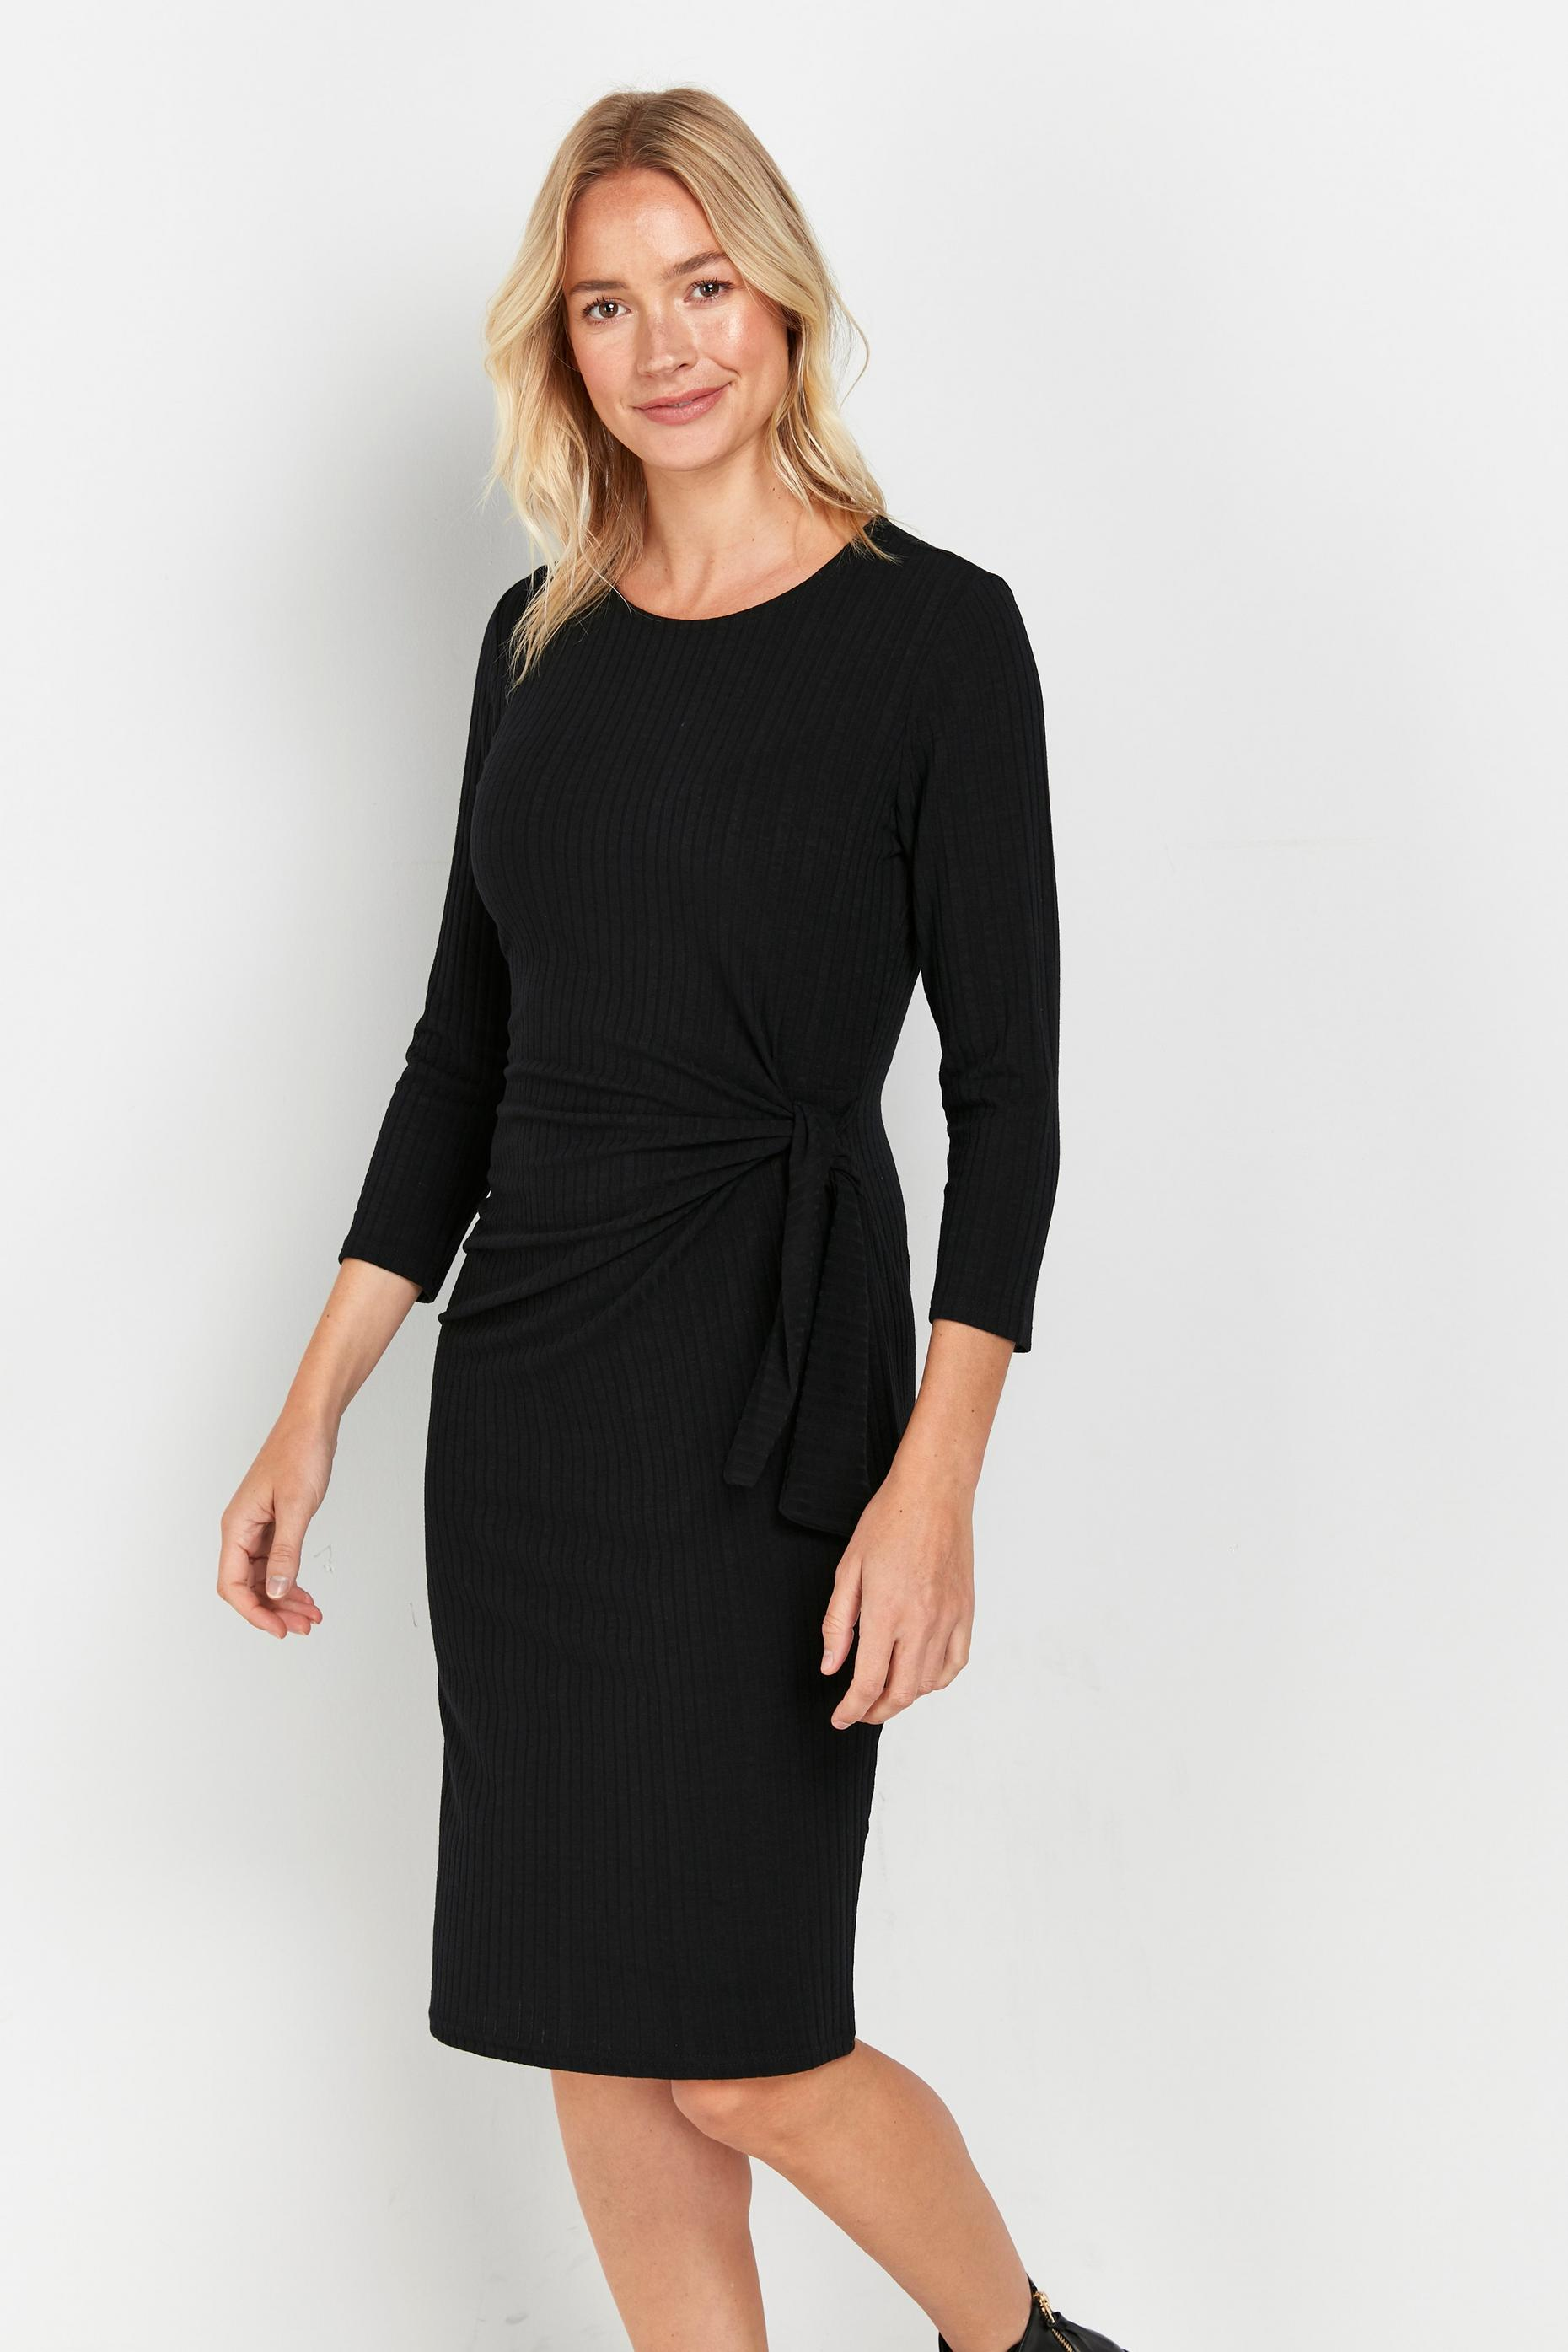 Black Ribbed Side Tie Dress